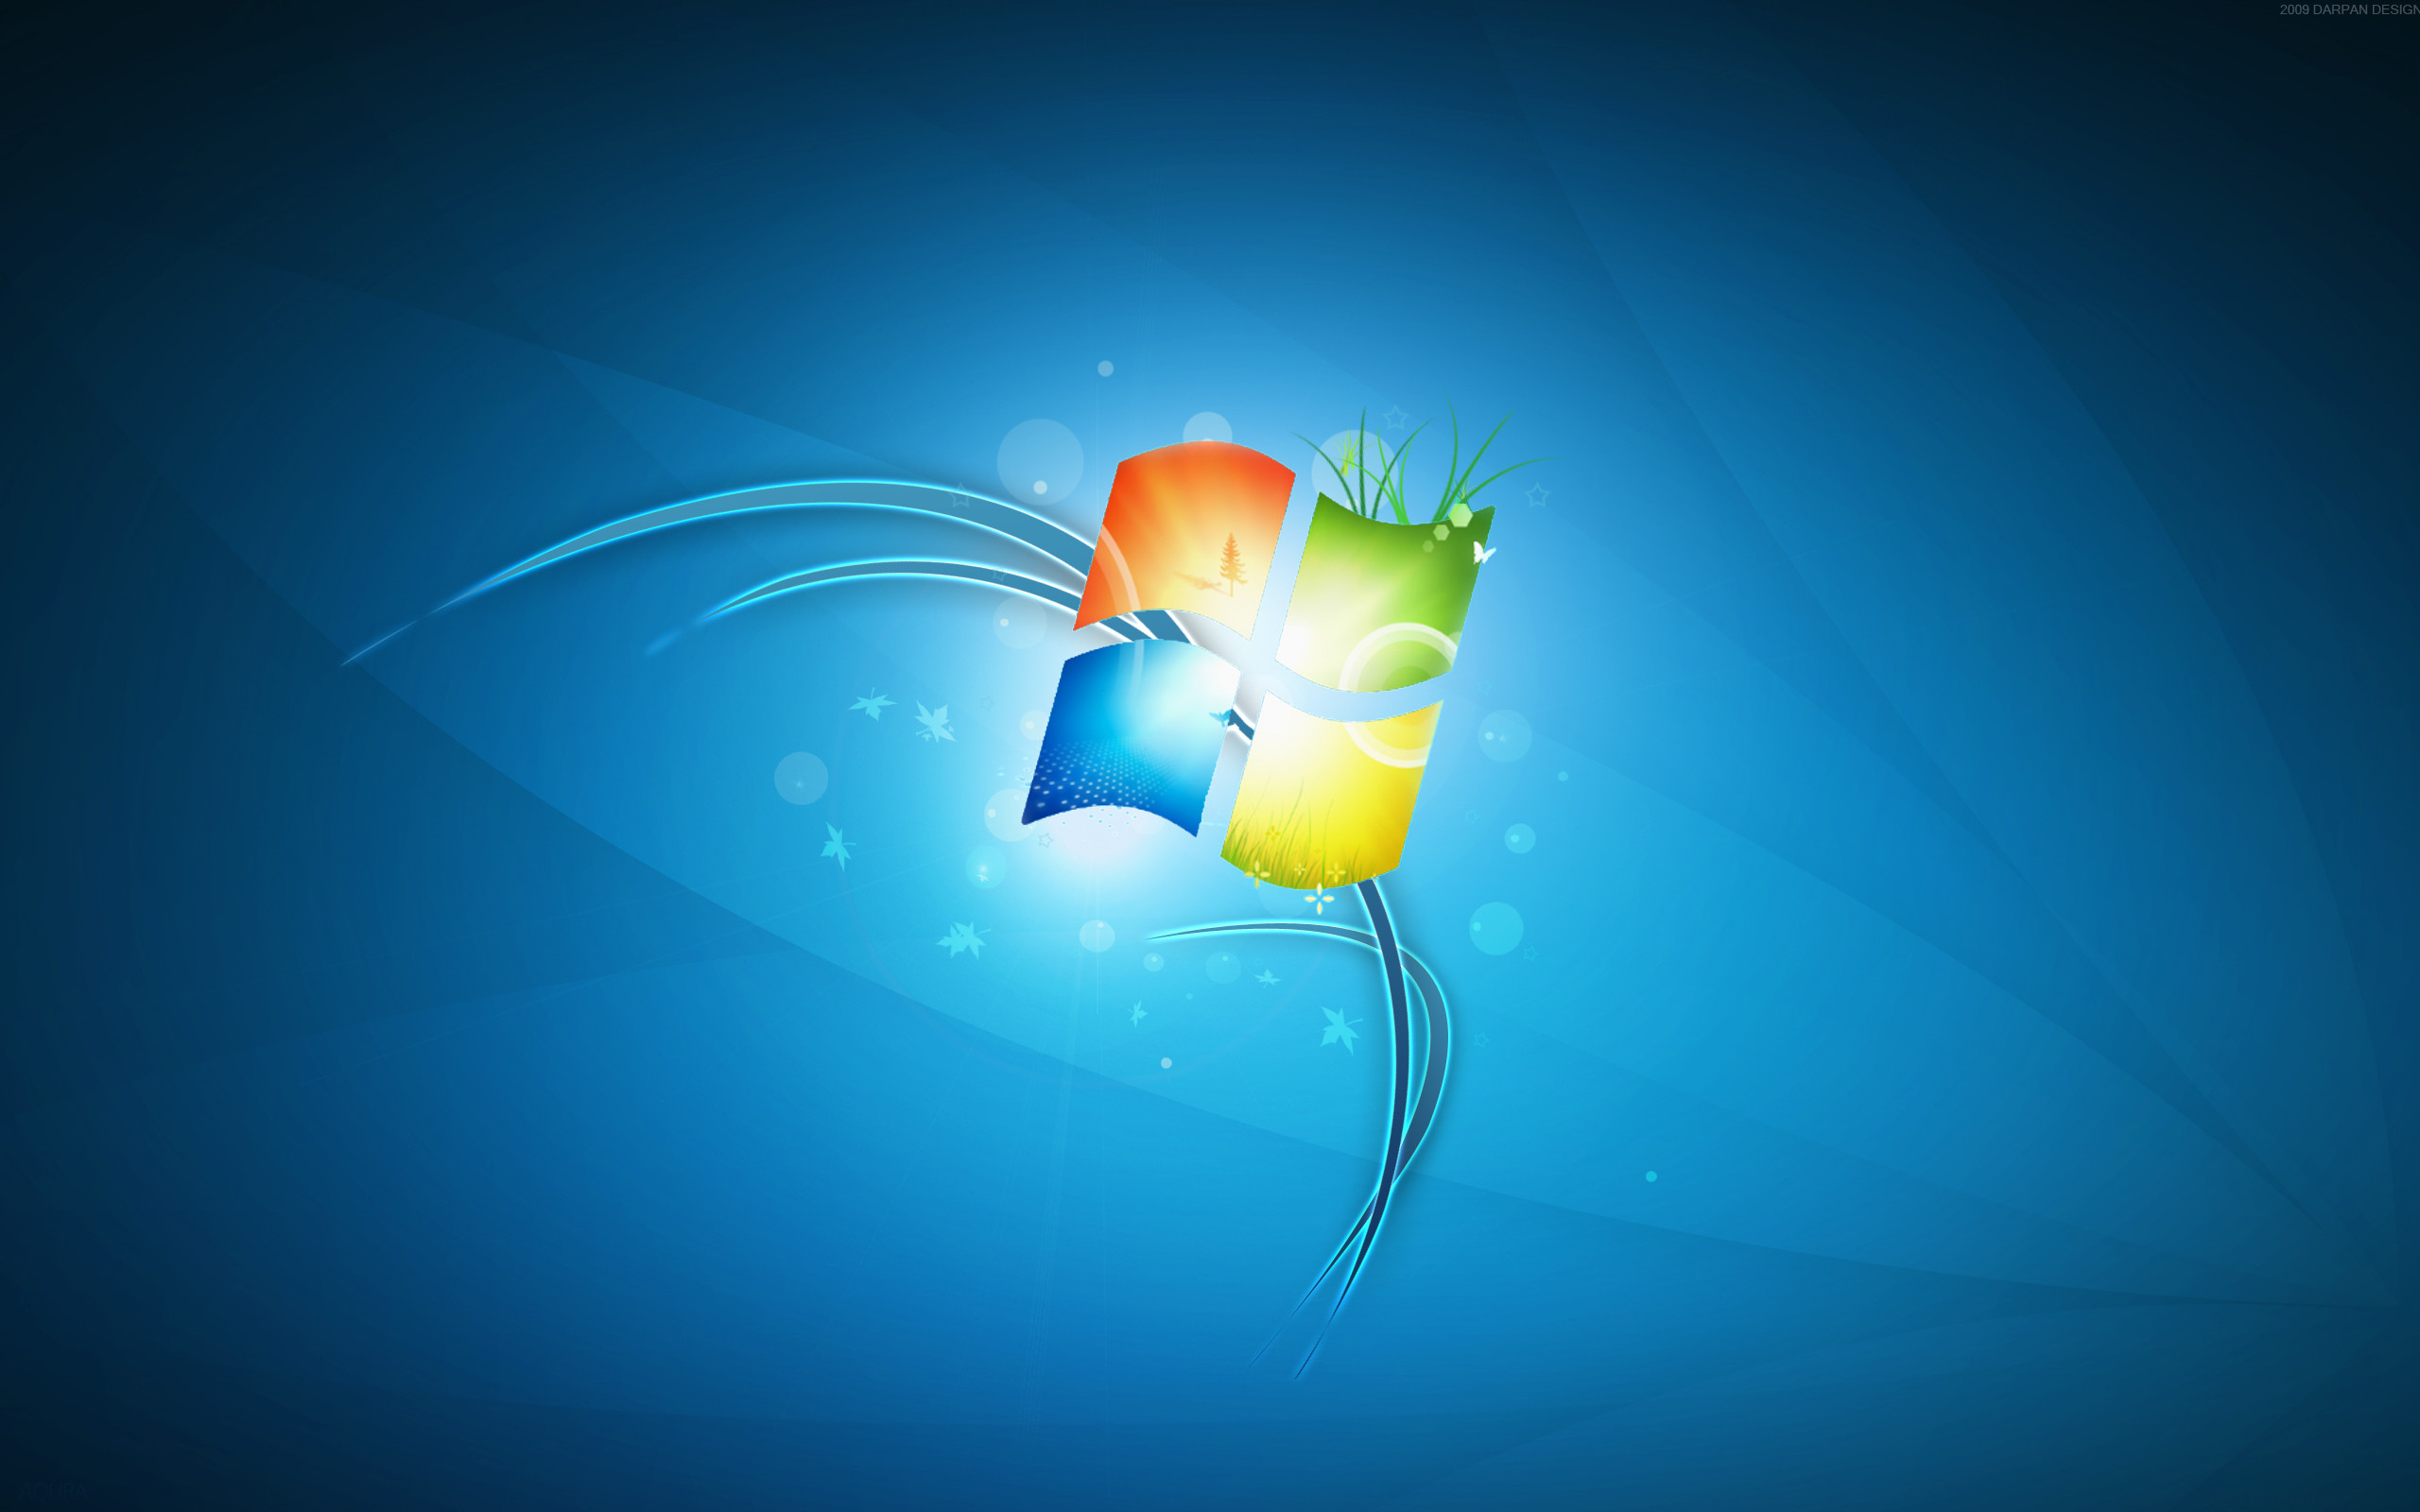 Windows 7 Hd Wallpaper Wallpapertag